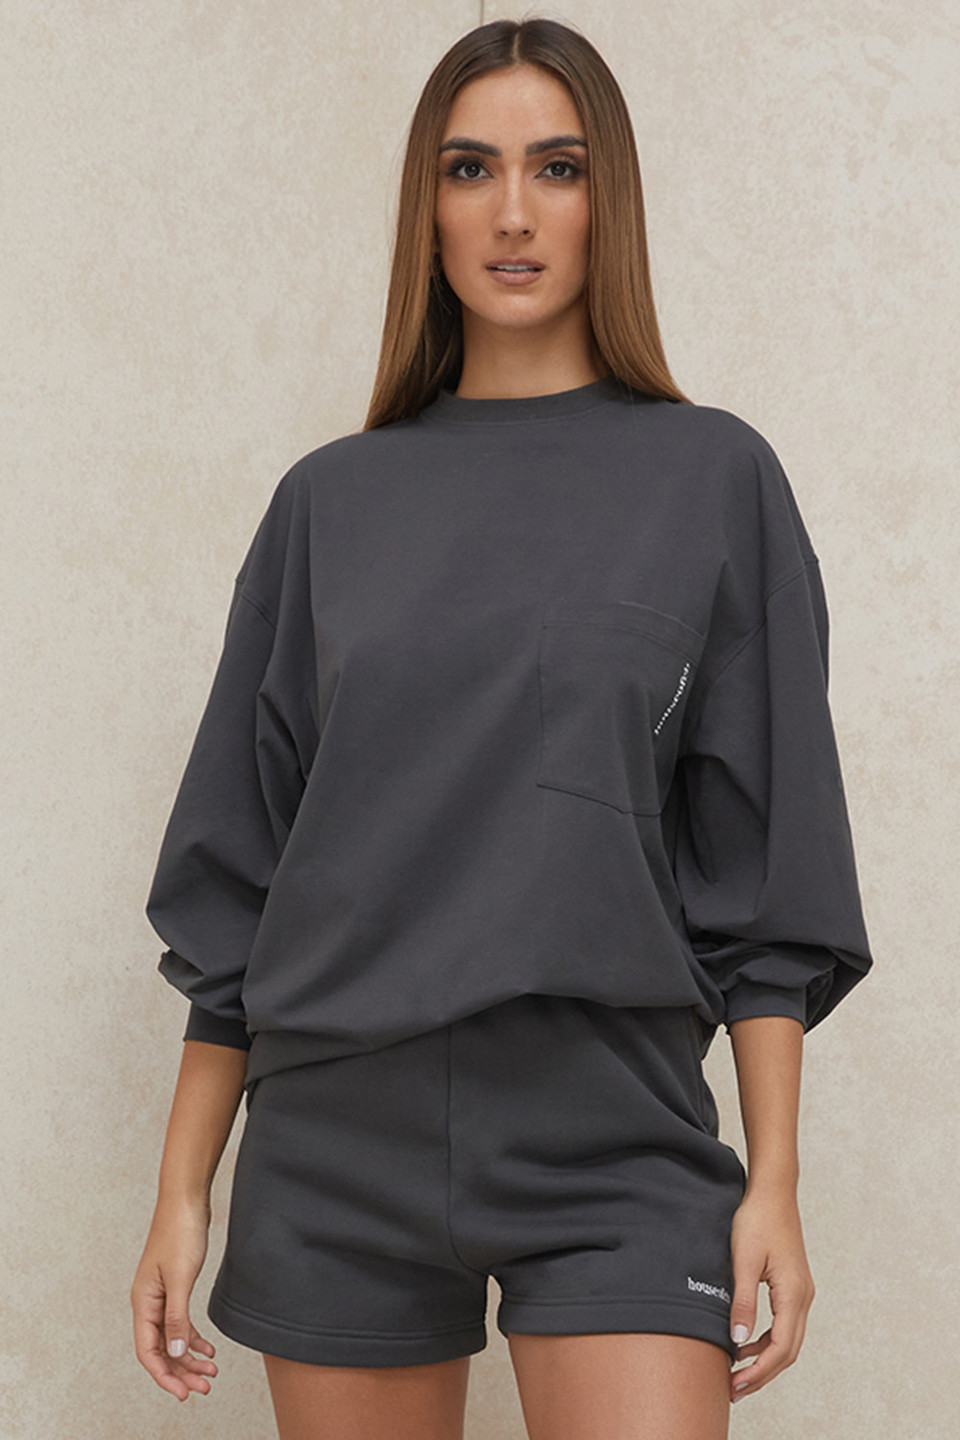 Strata Charcoal Long Sleeve Top